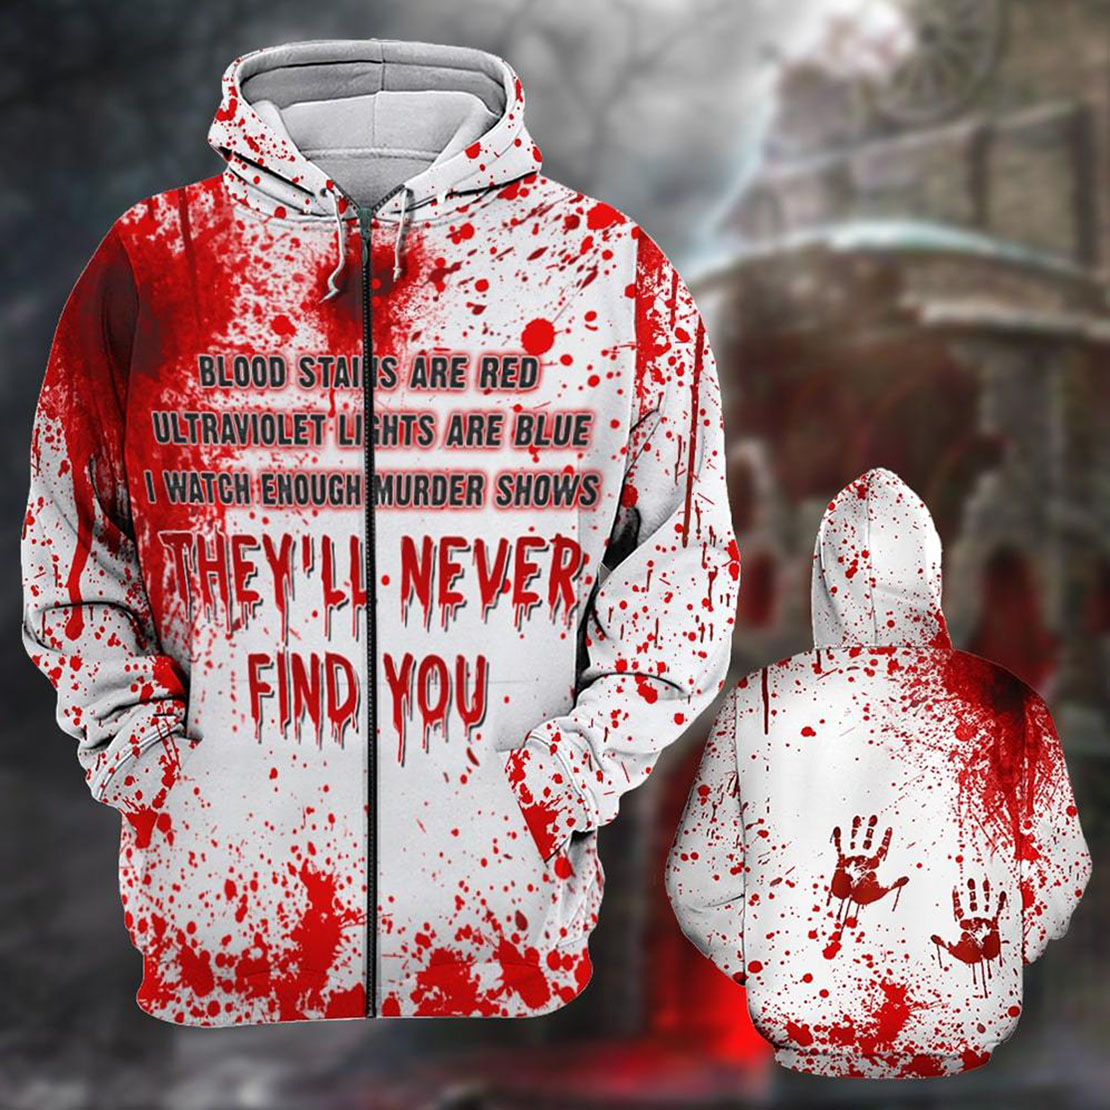 Halloween Blood Stains Are Red Ultraviolet Lights Are Blue I Watch Enough Murder Shows All Over Print 3d Zip Hoodie